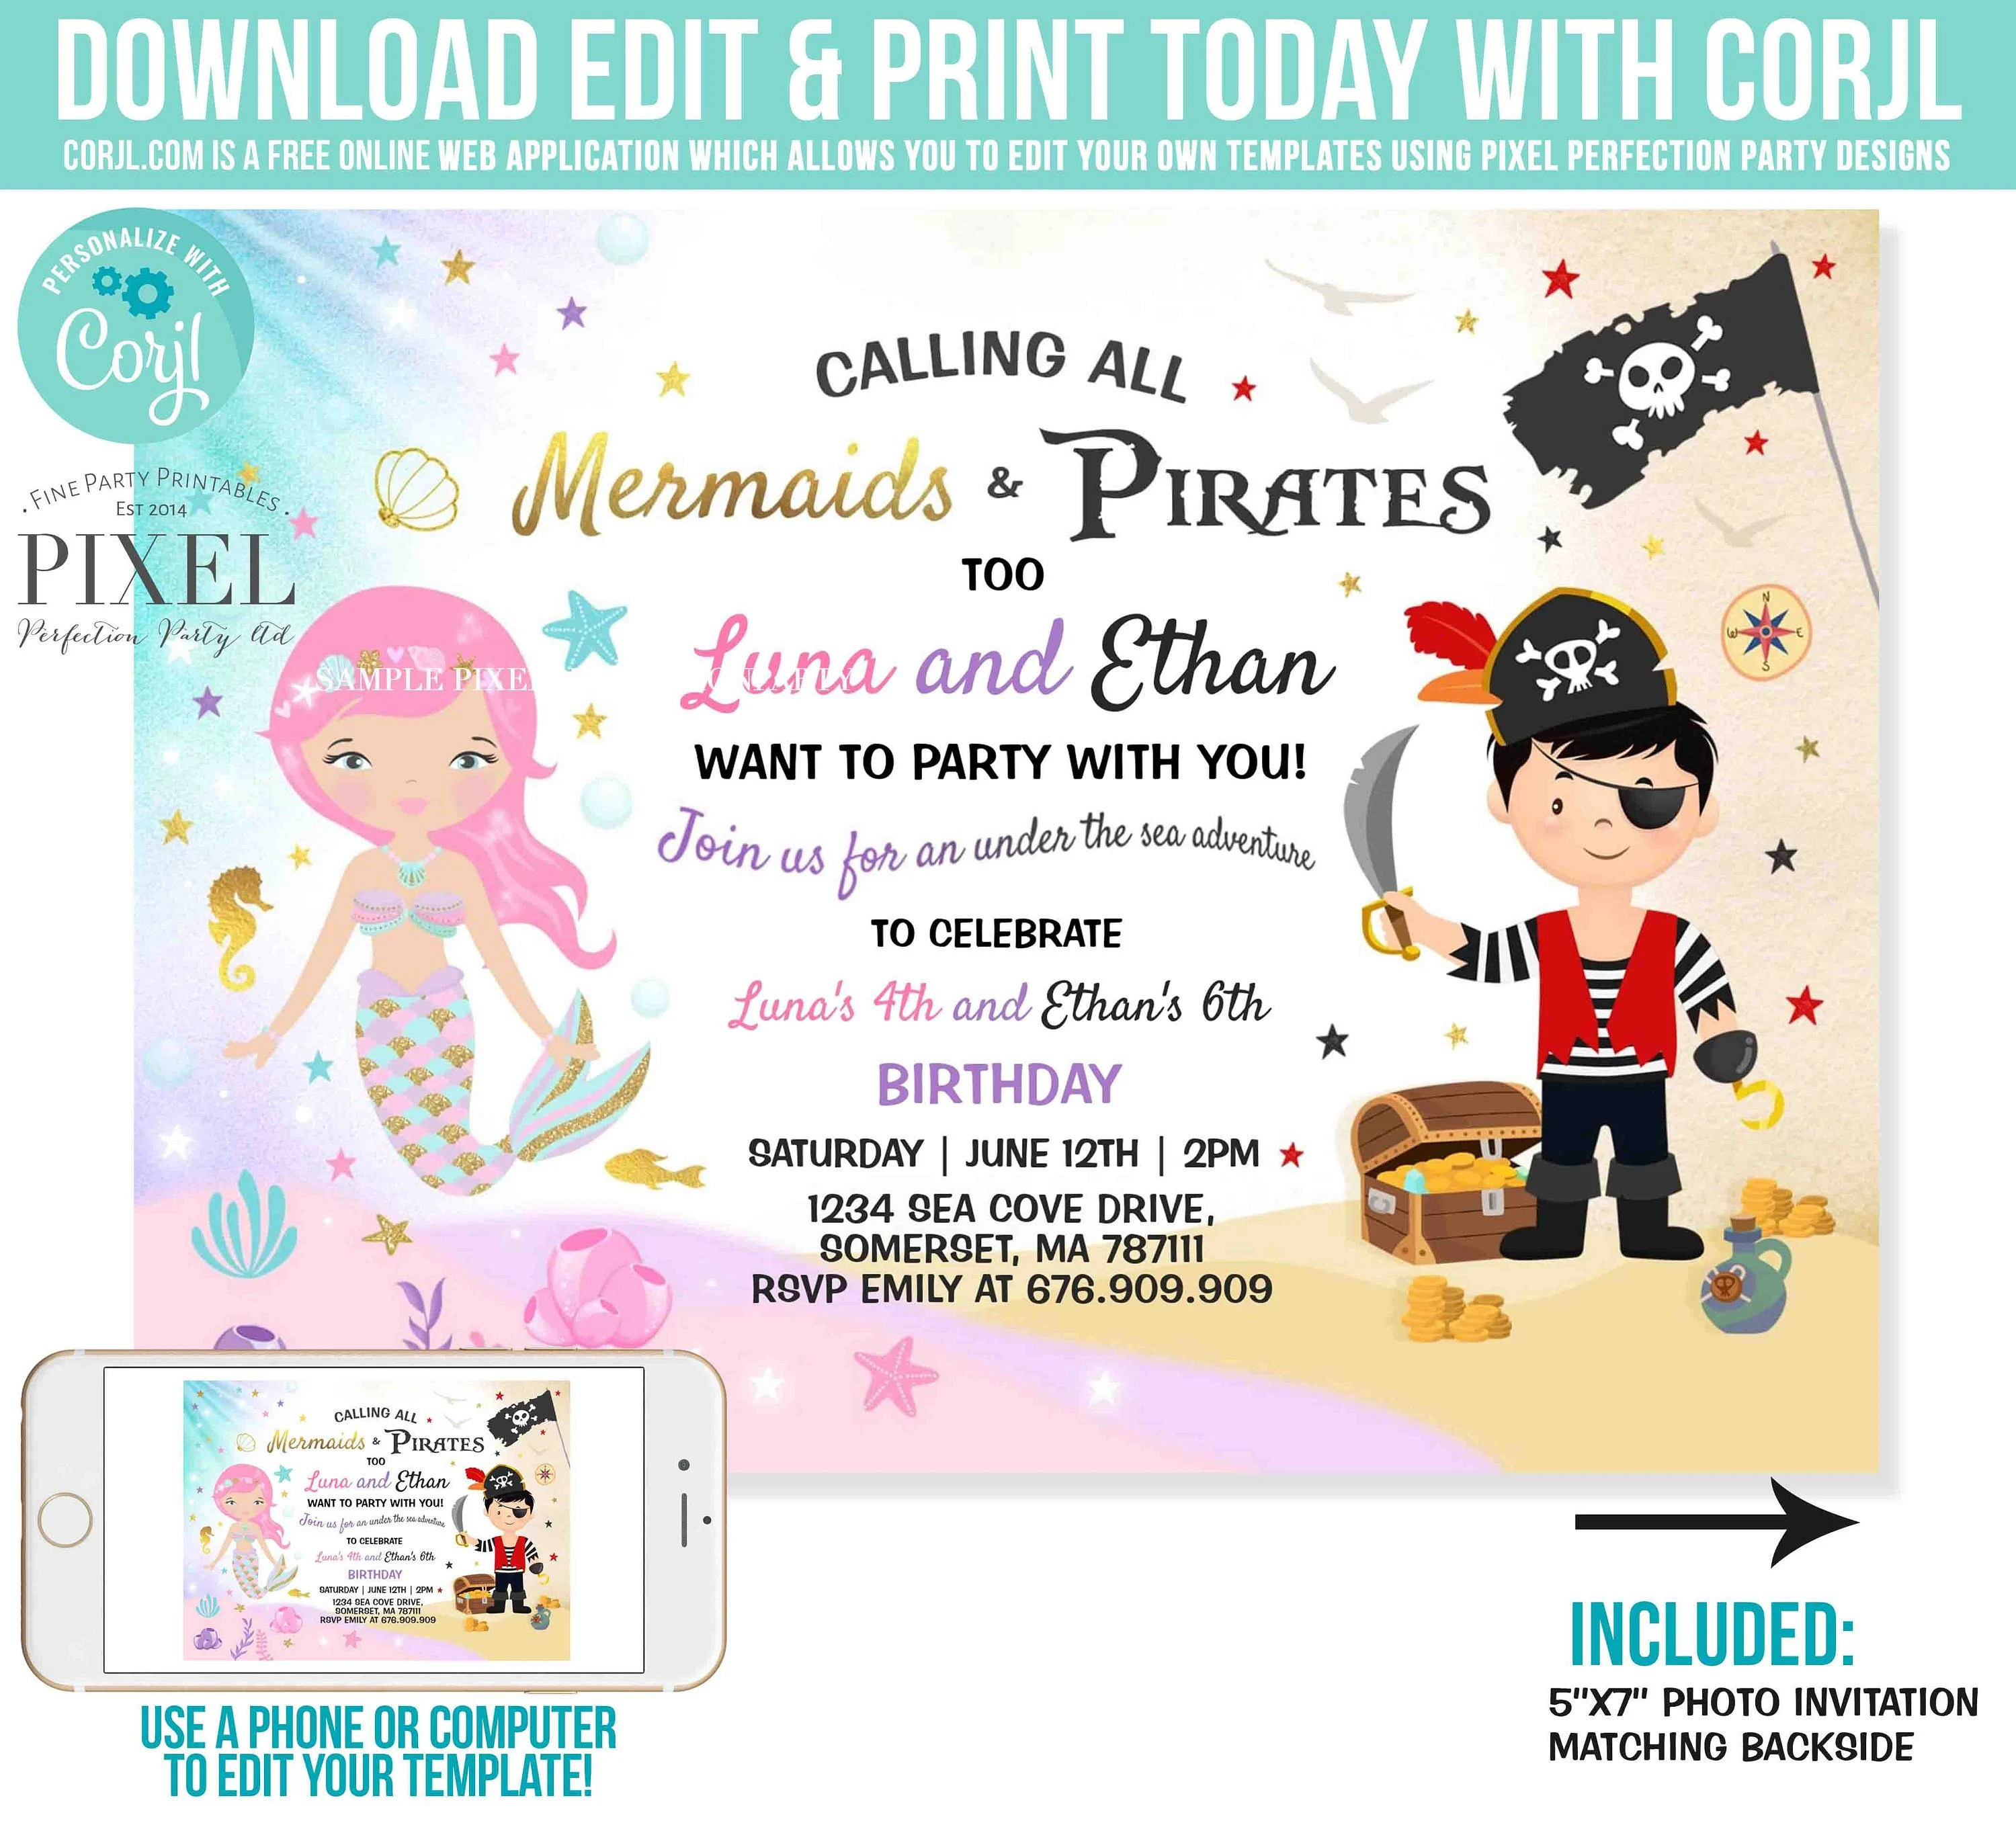 mermaid and pirate birthday invitation sibling mermaid pirate invite sibling mermaid pirate party instant download editable file 7o